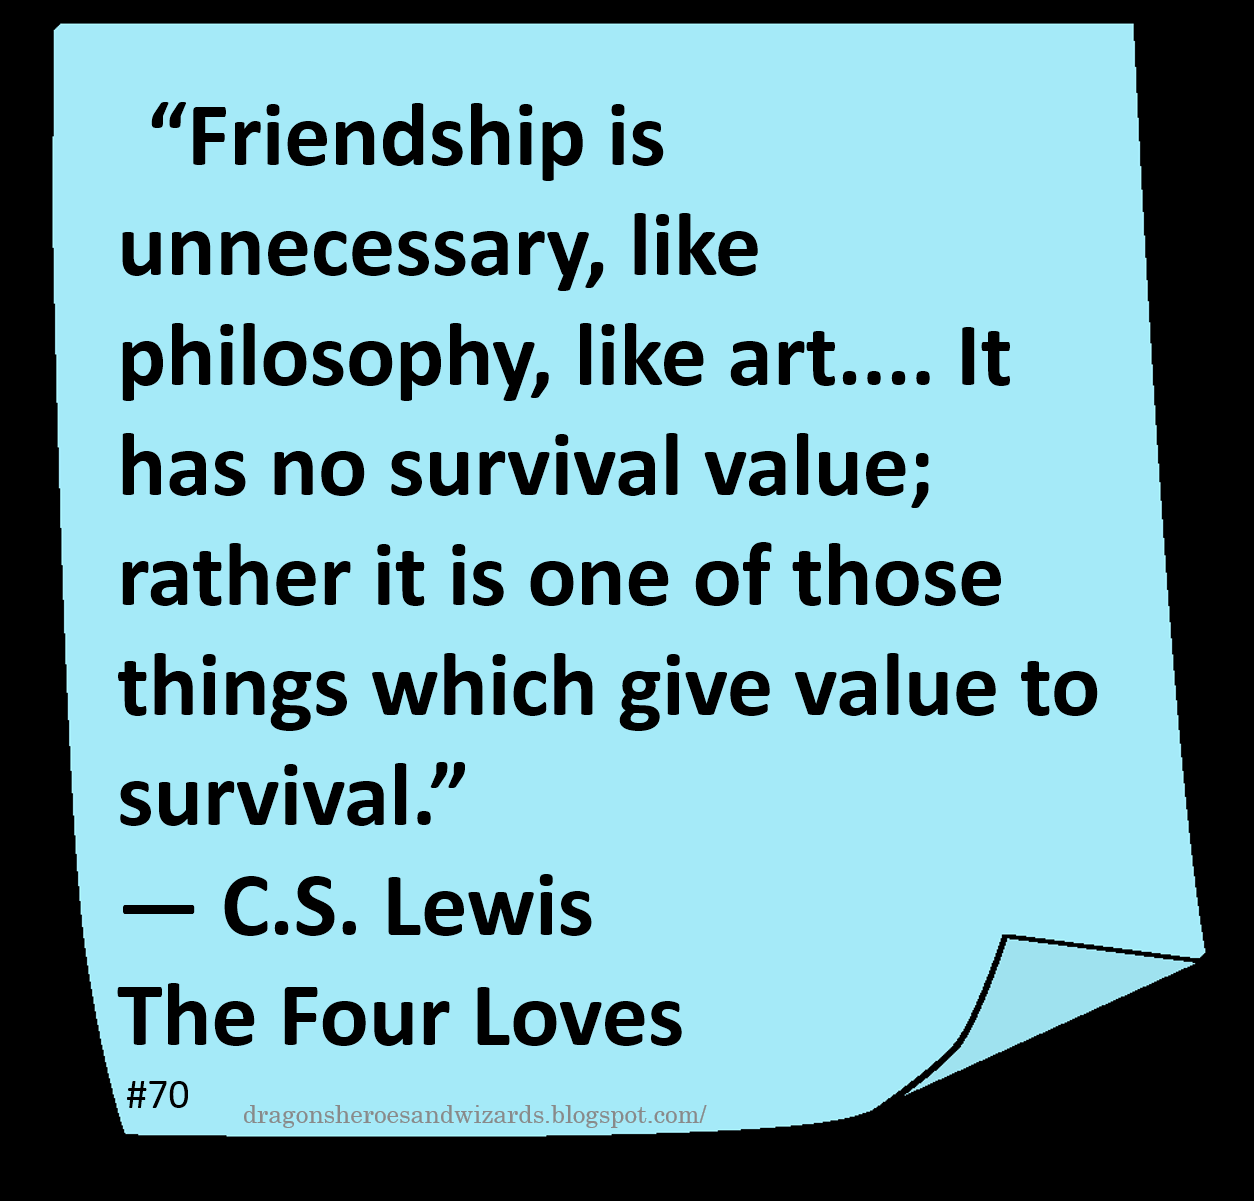 Cs Lewis Quote About Friendship ♥ C S Lewis ♥  Quote Author Friendship  Scifi  Fantasy